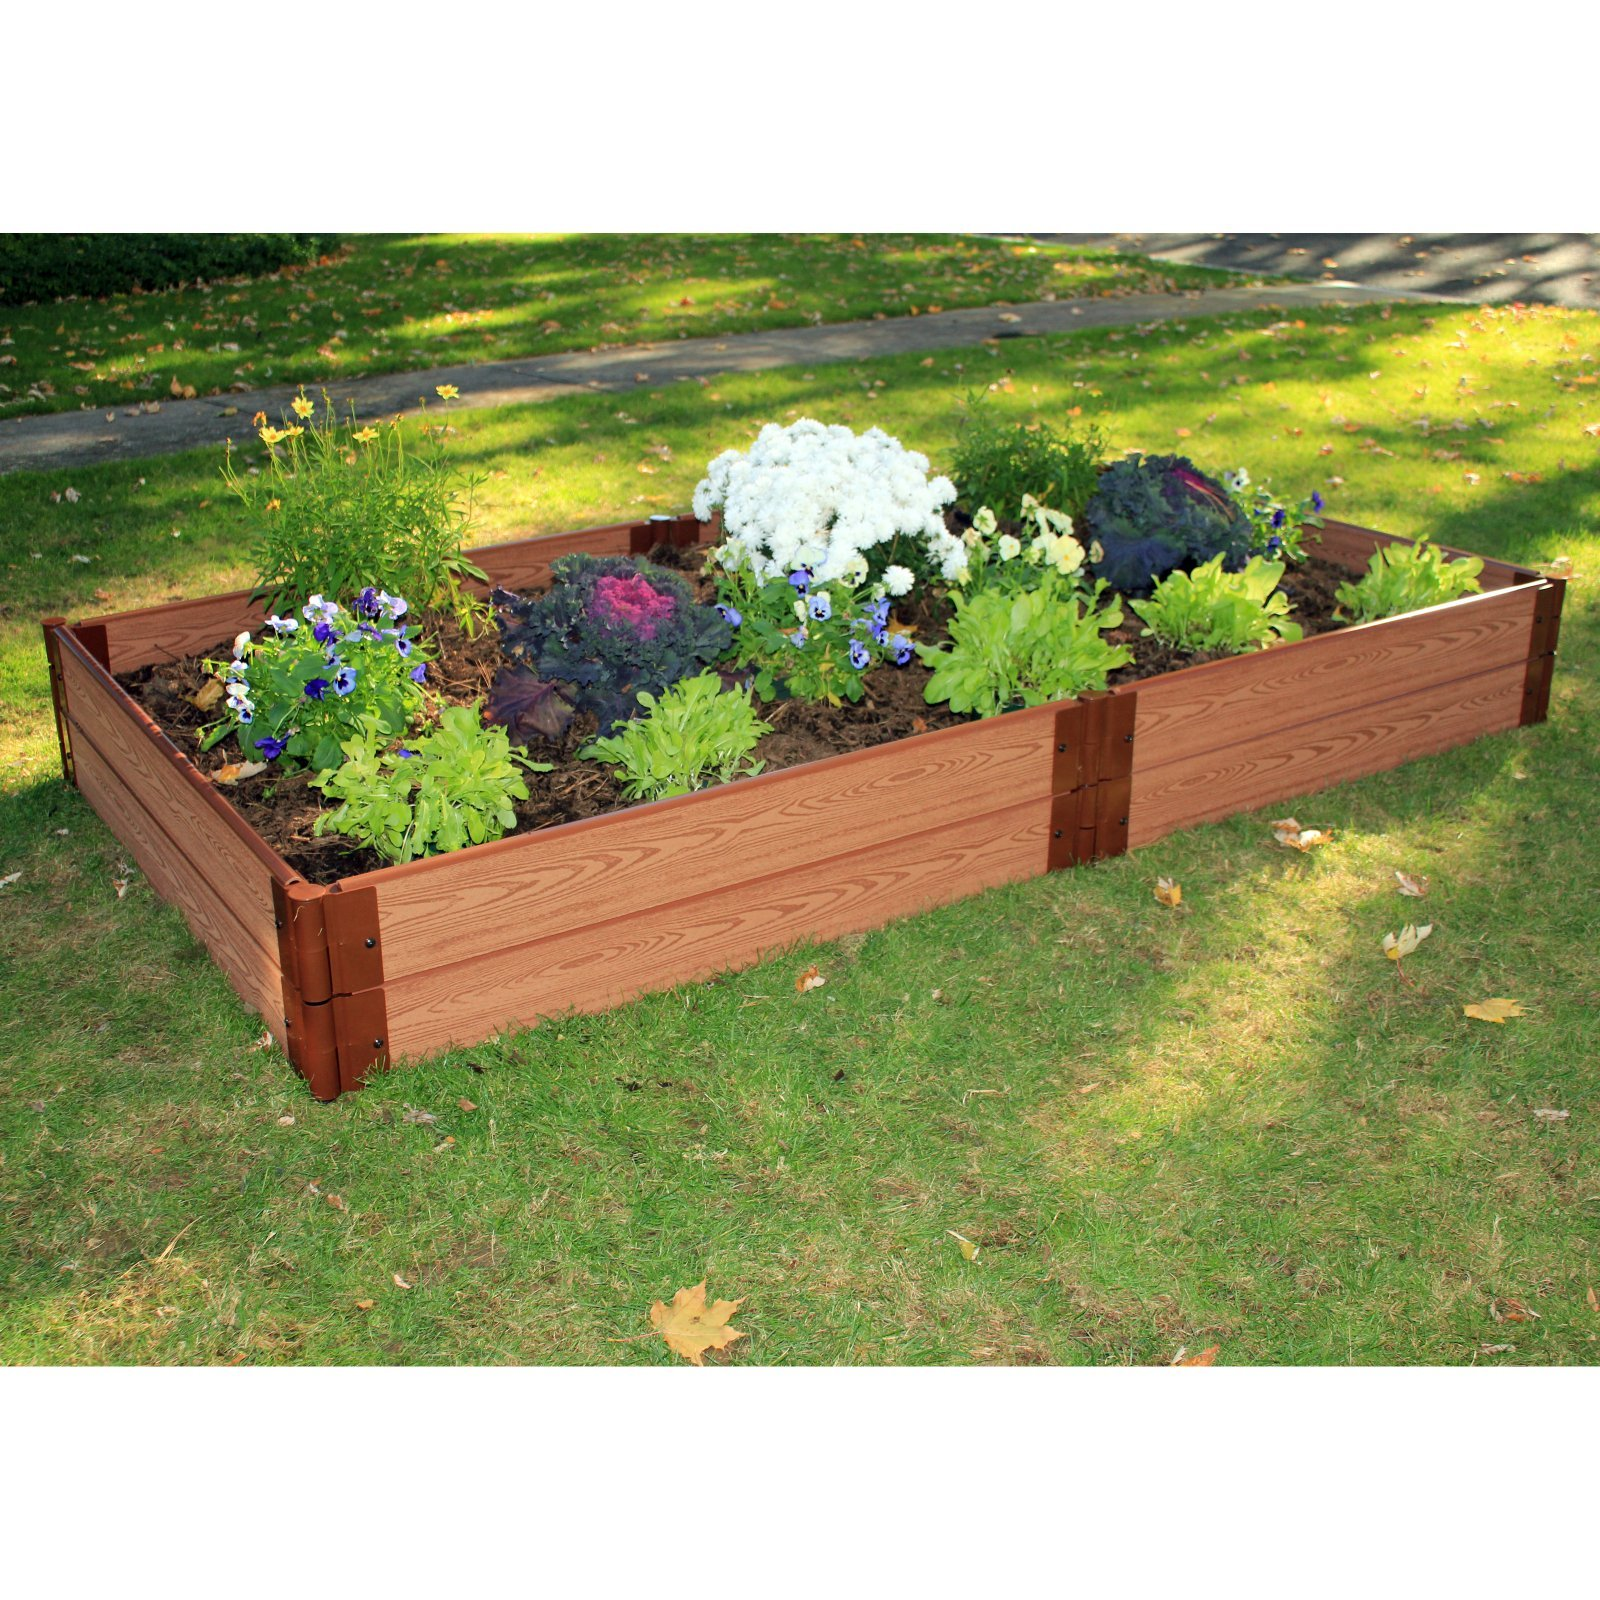 Frame It All 4 ft. x 8 ft. x 12 in. Raised Garden with 1 in. Profile Composite Wood Grain Timbers